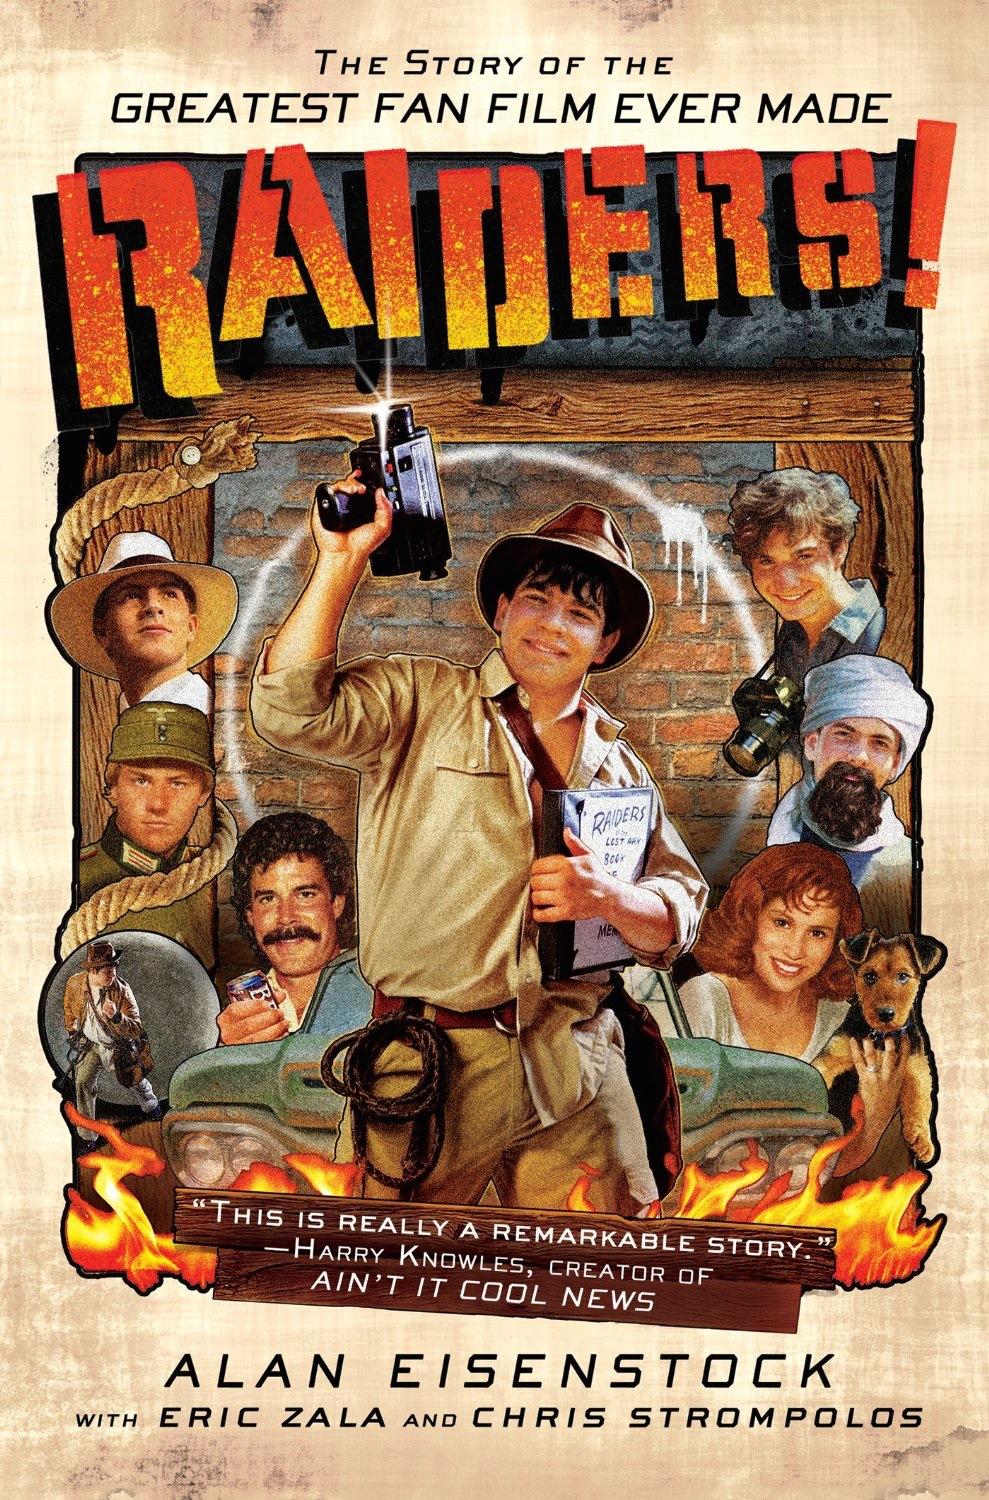 fantastic-trailer-for-raiders-the-story-of-the-greatest-fan-film-ever-made